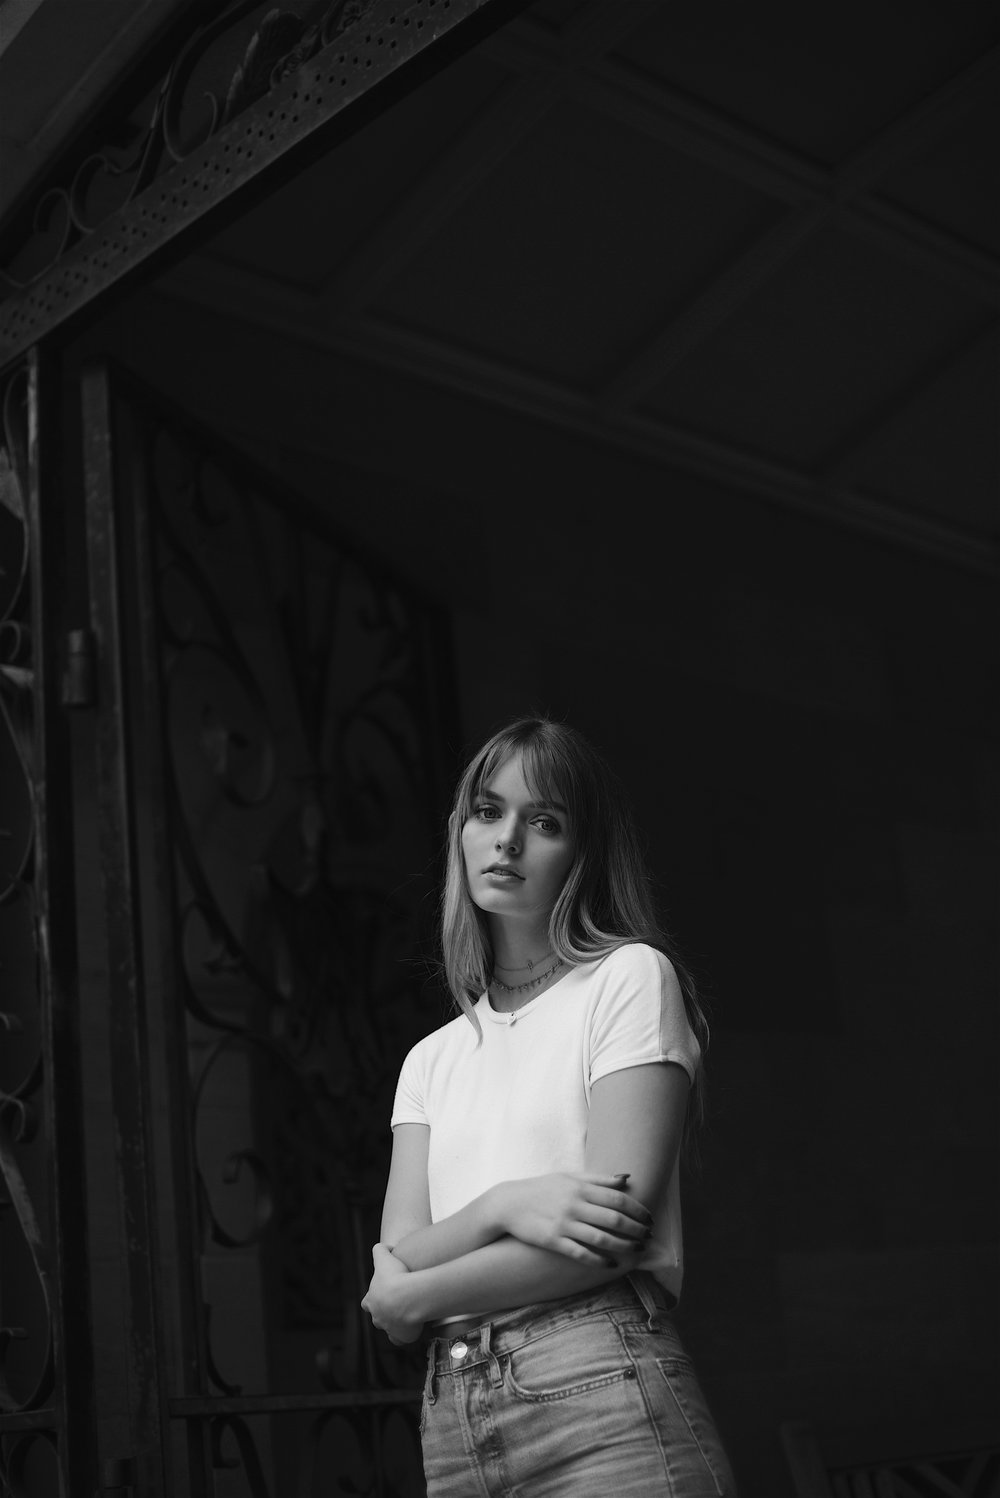 light_shadow2.jpg